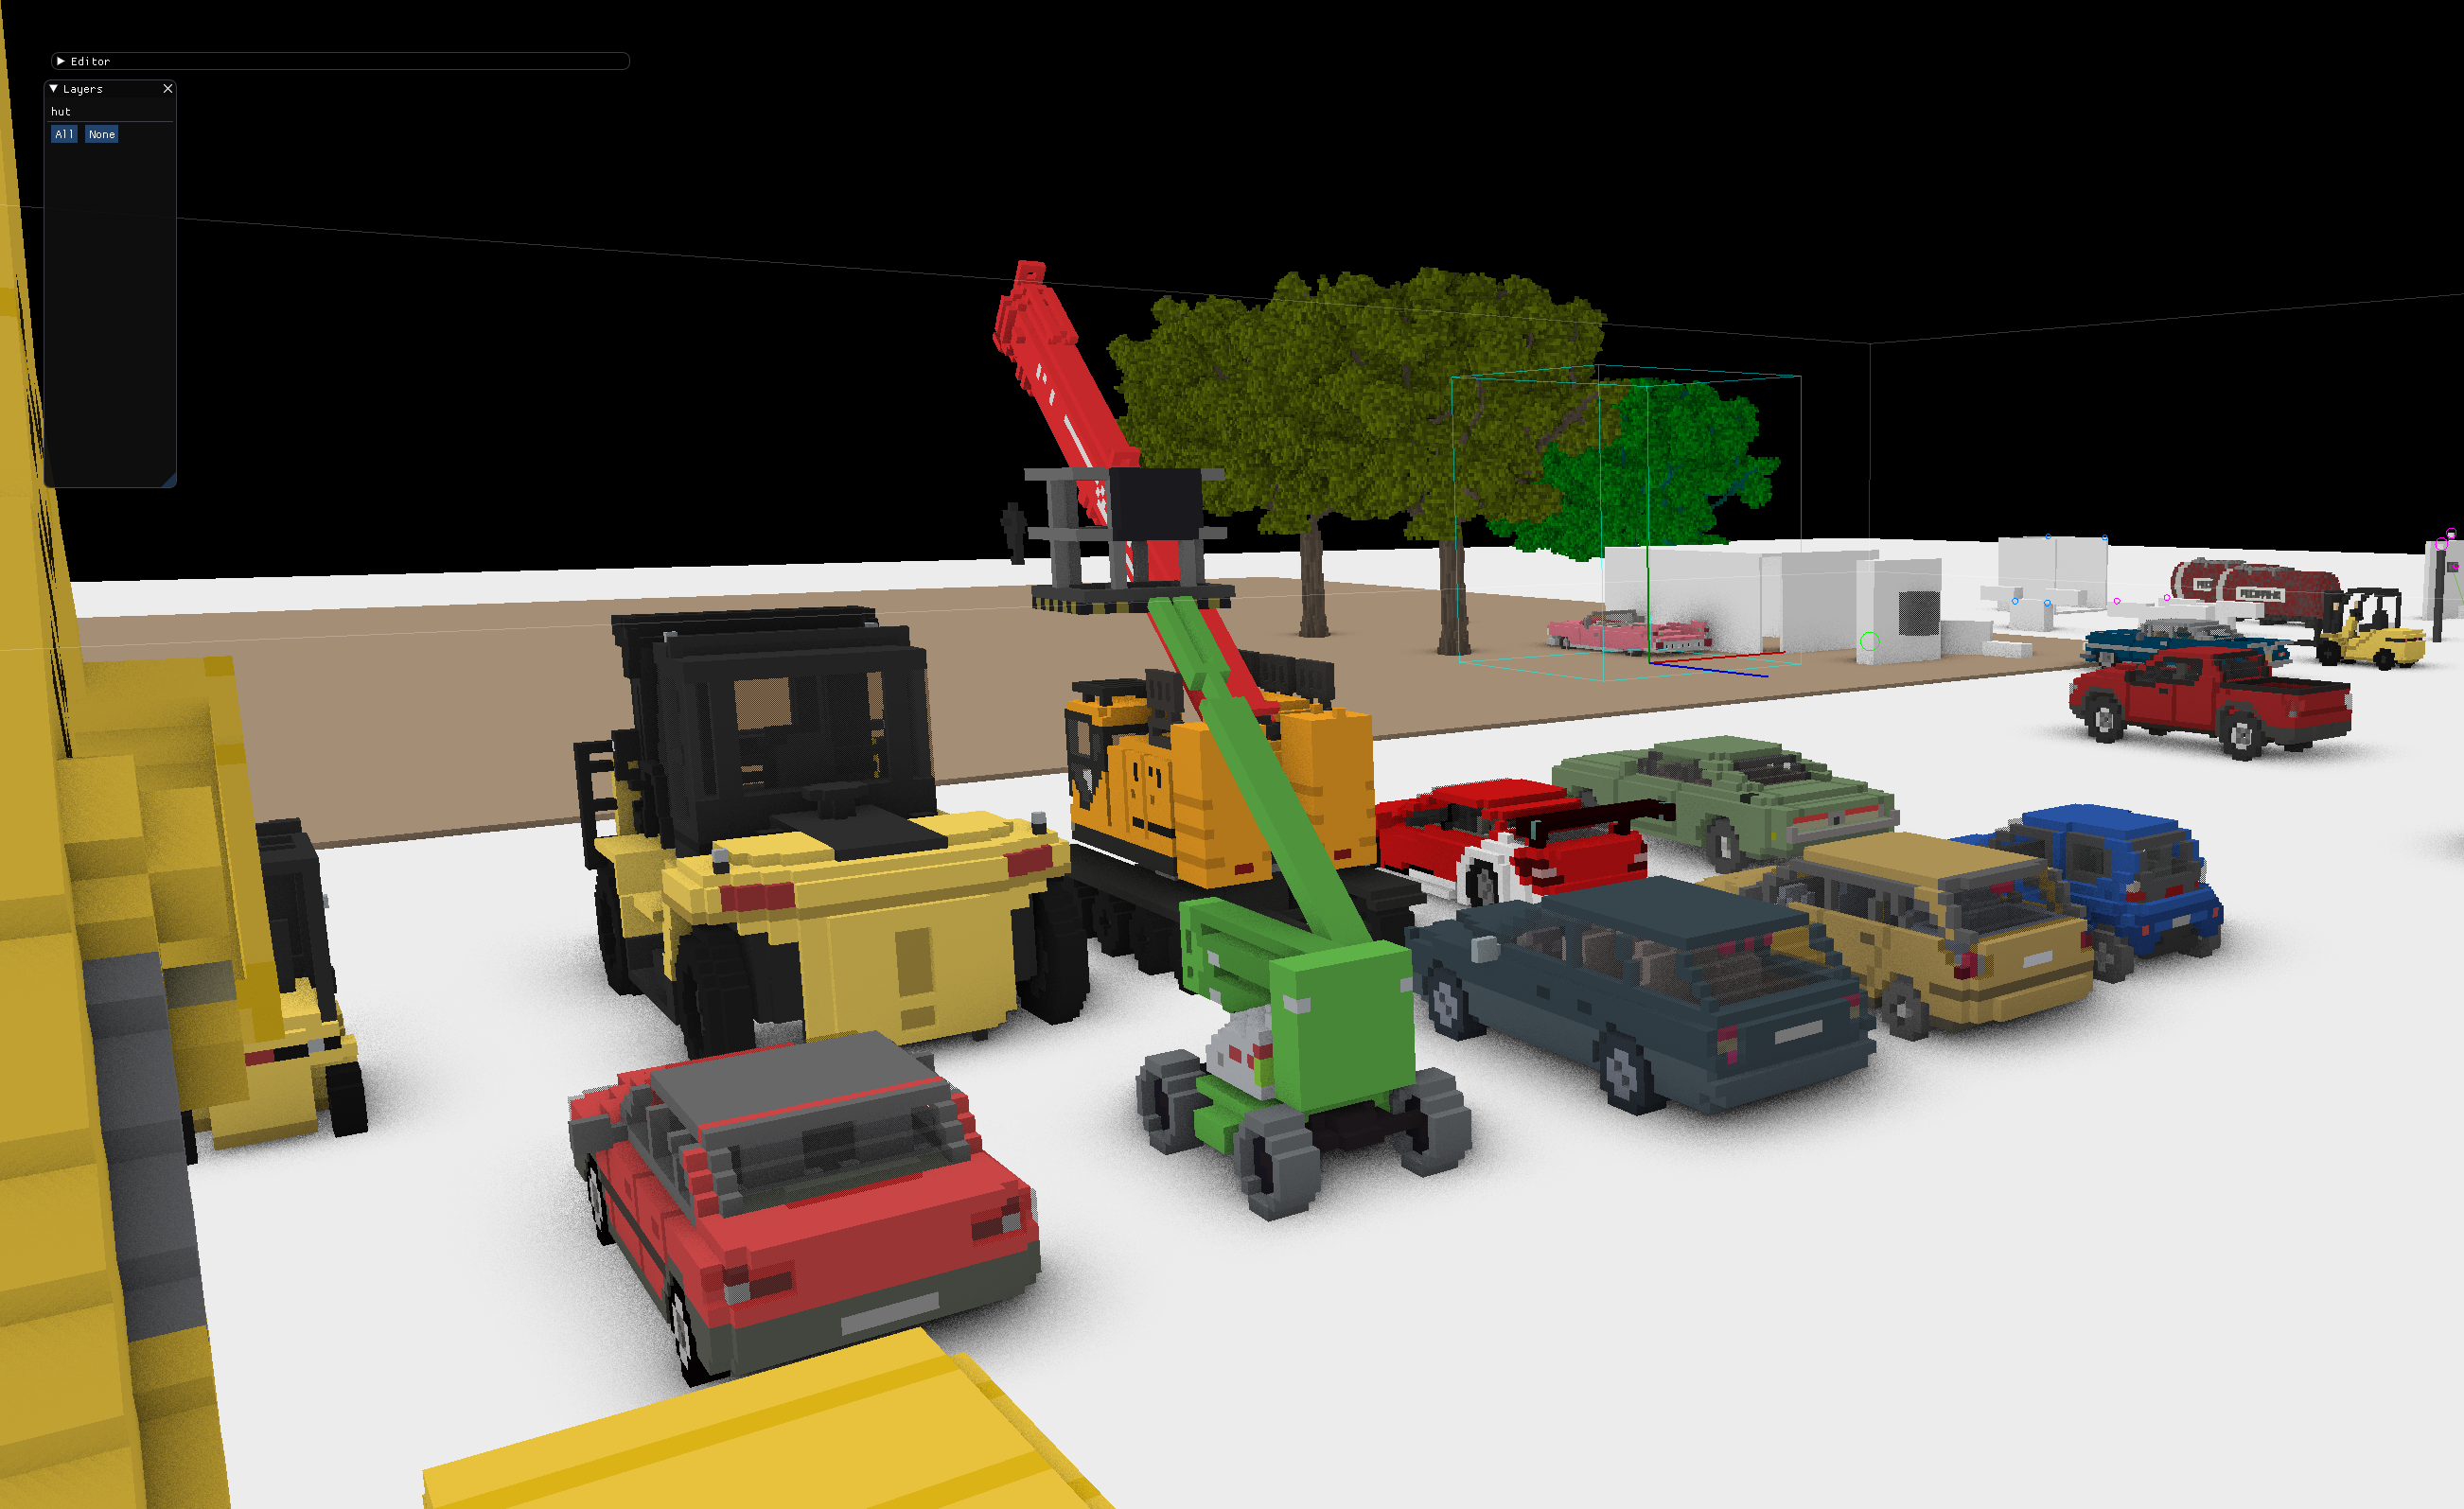 Vehicles in editor